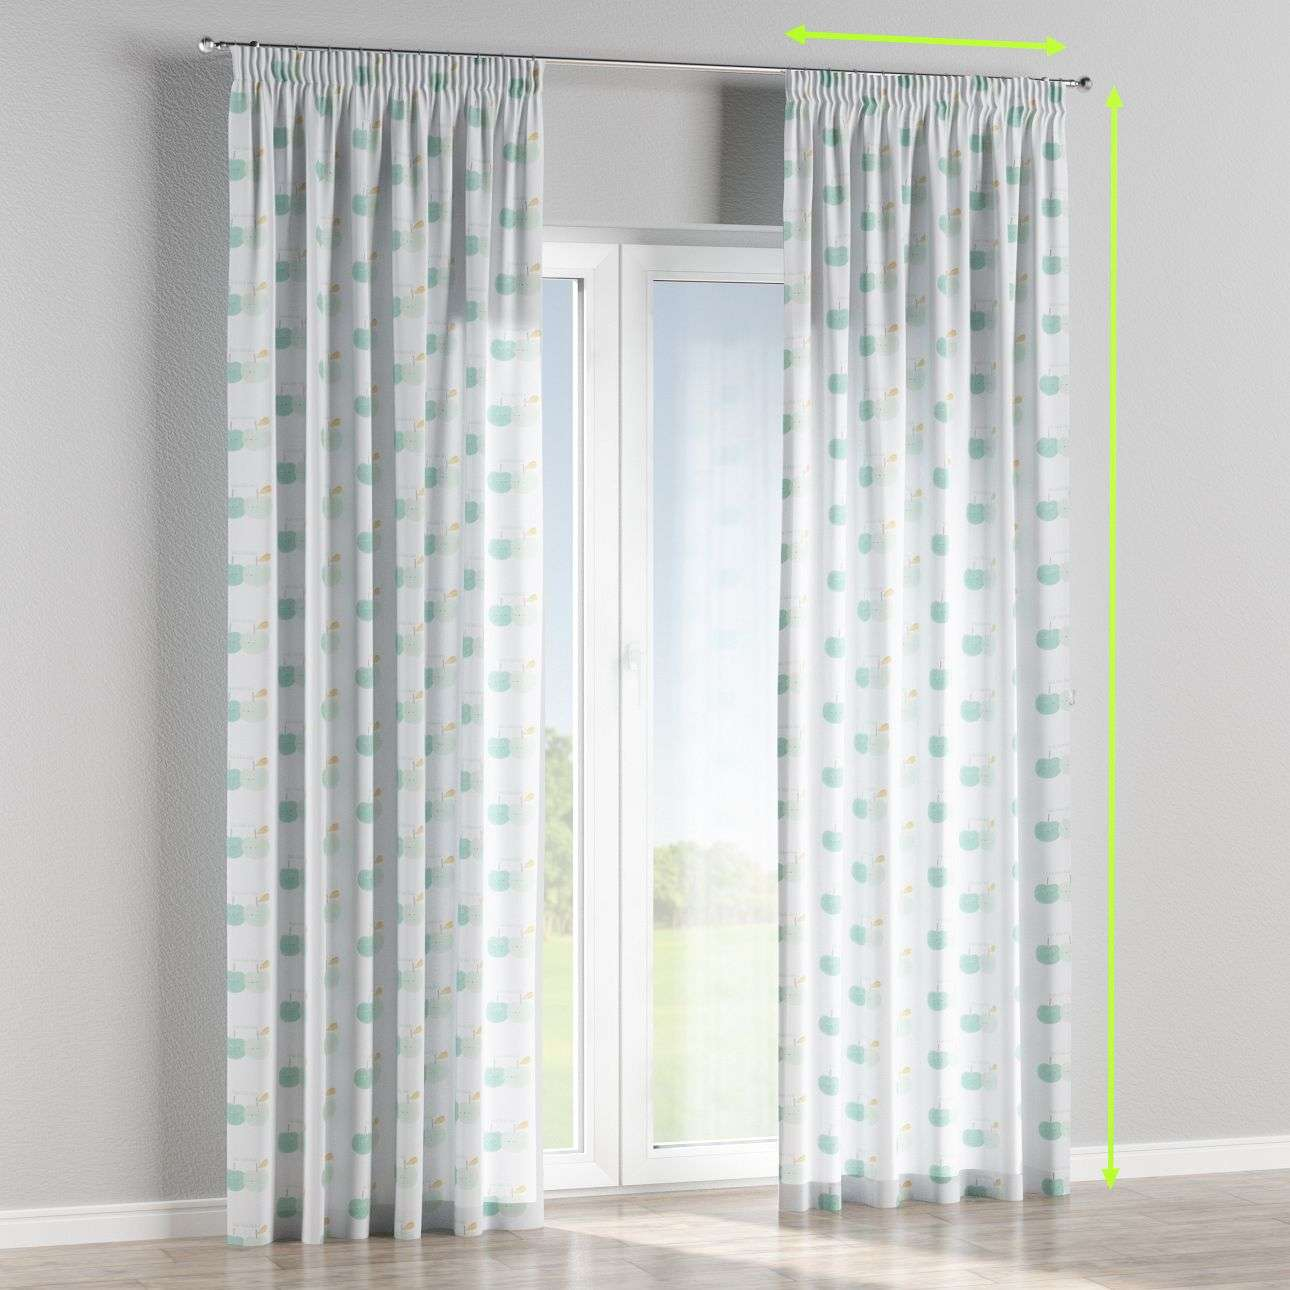 Pencil pleat lined curtains in collection Apanona, fabric: 151-02